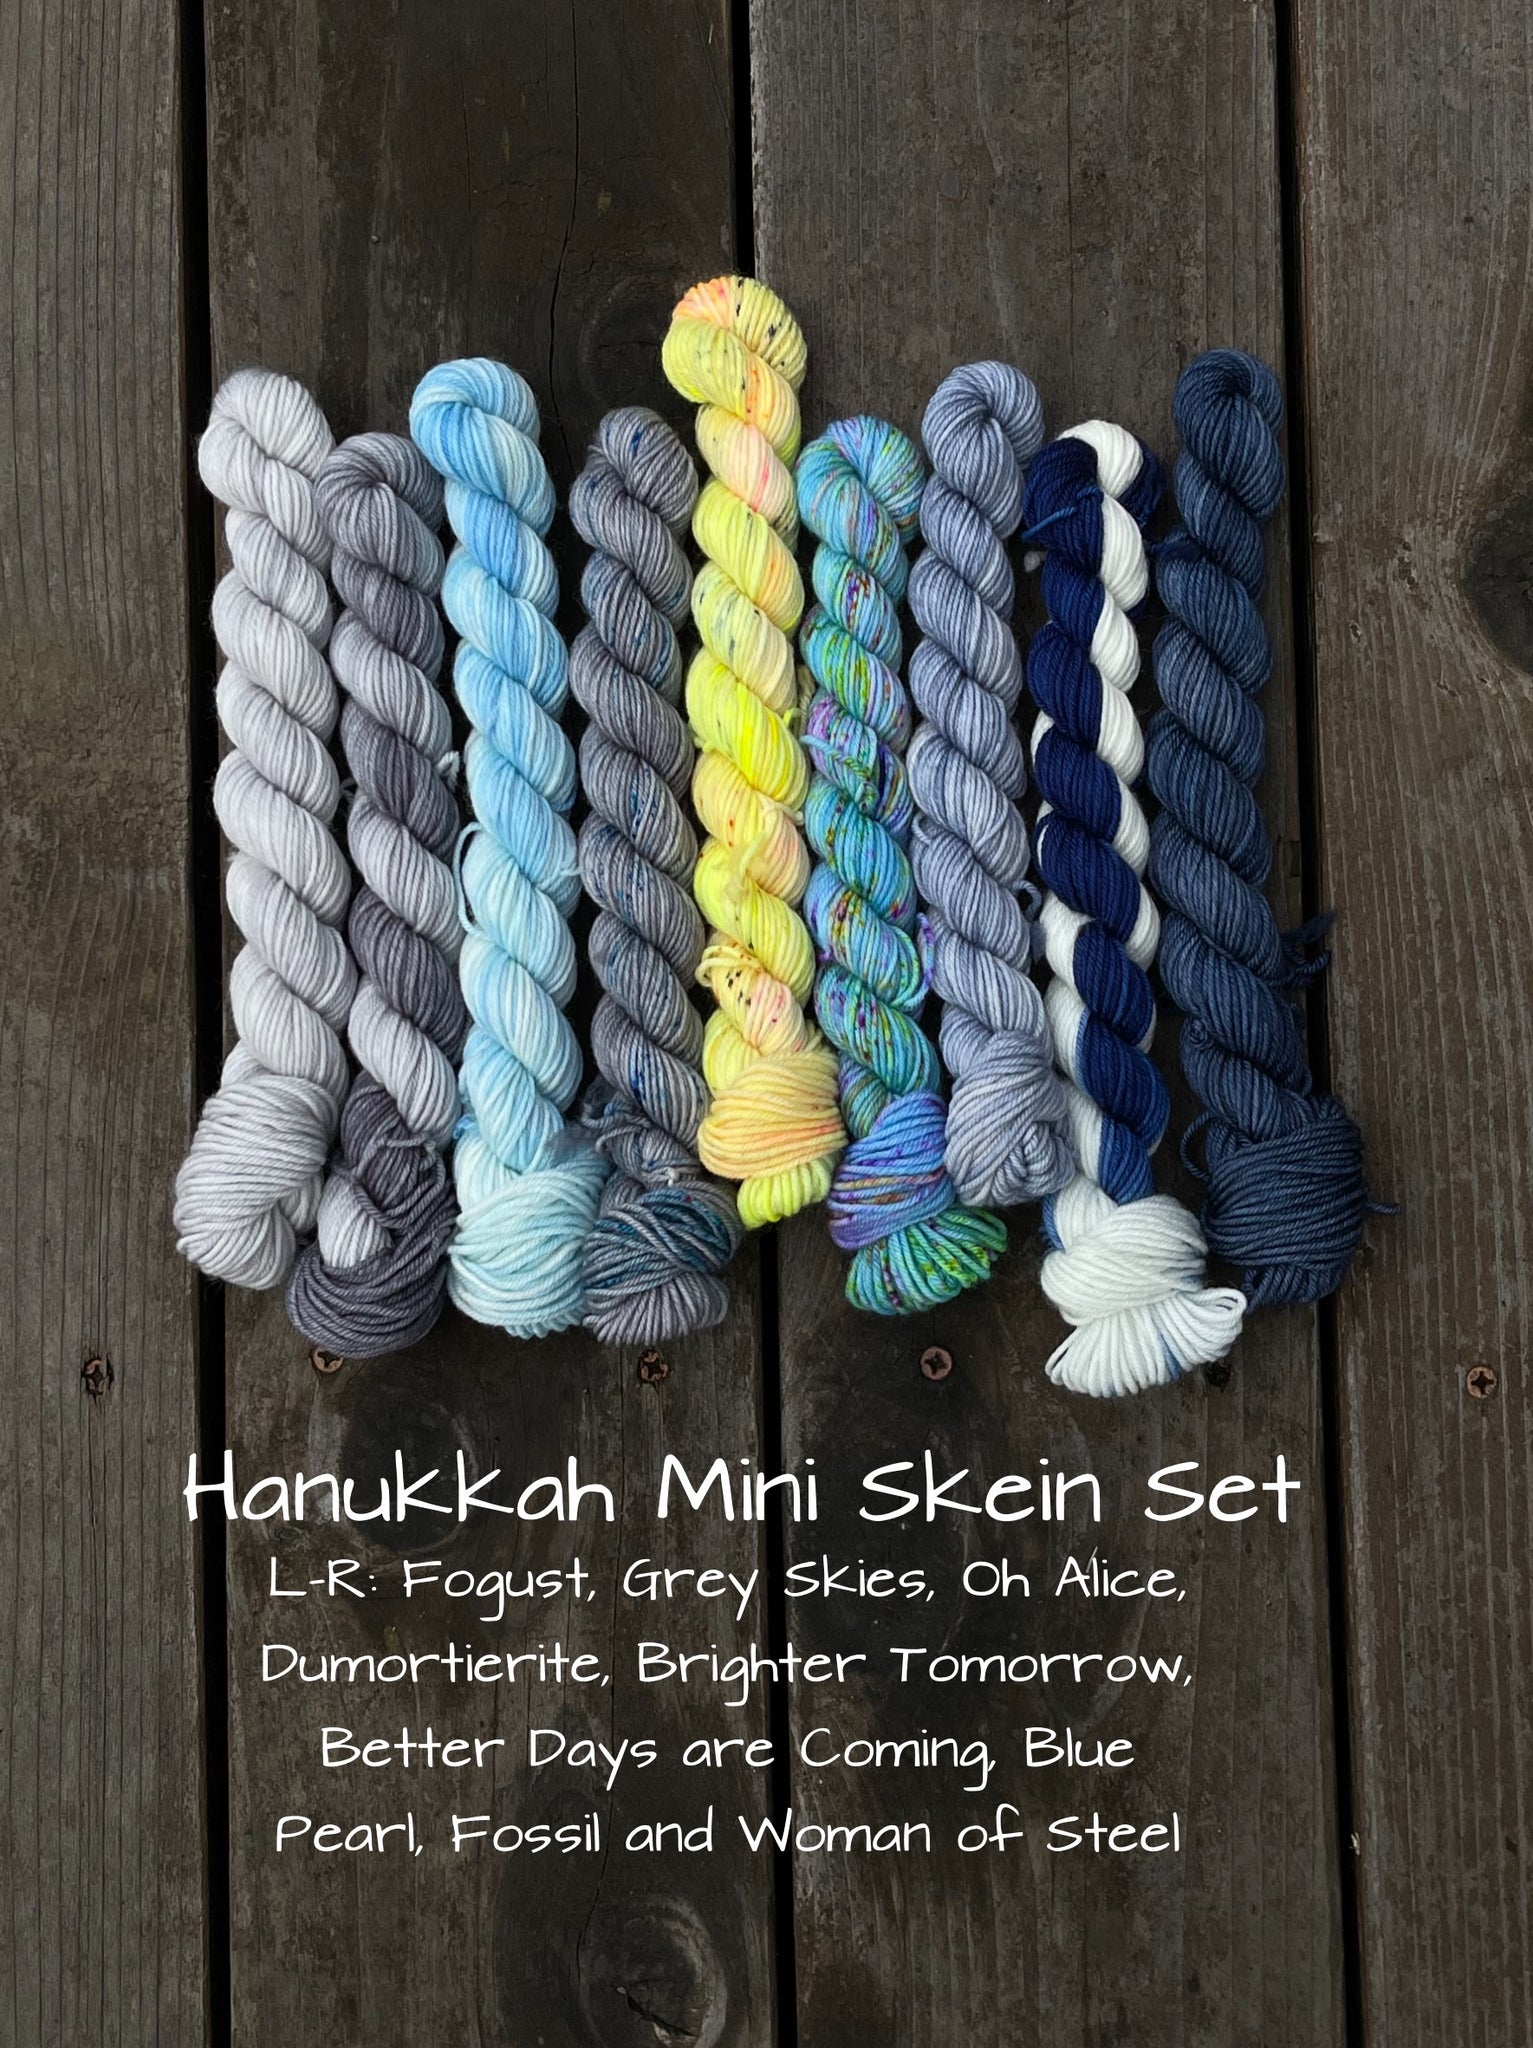 Hanukkah Mini Skein Set